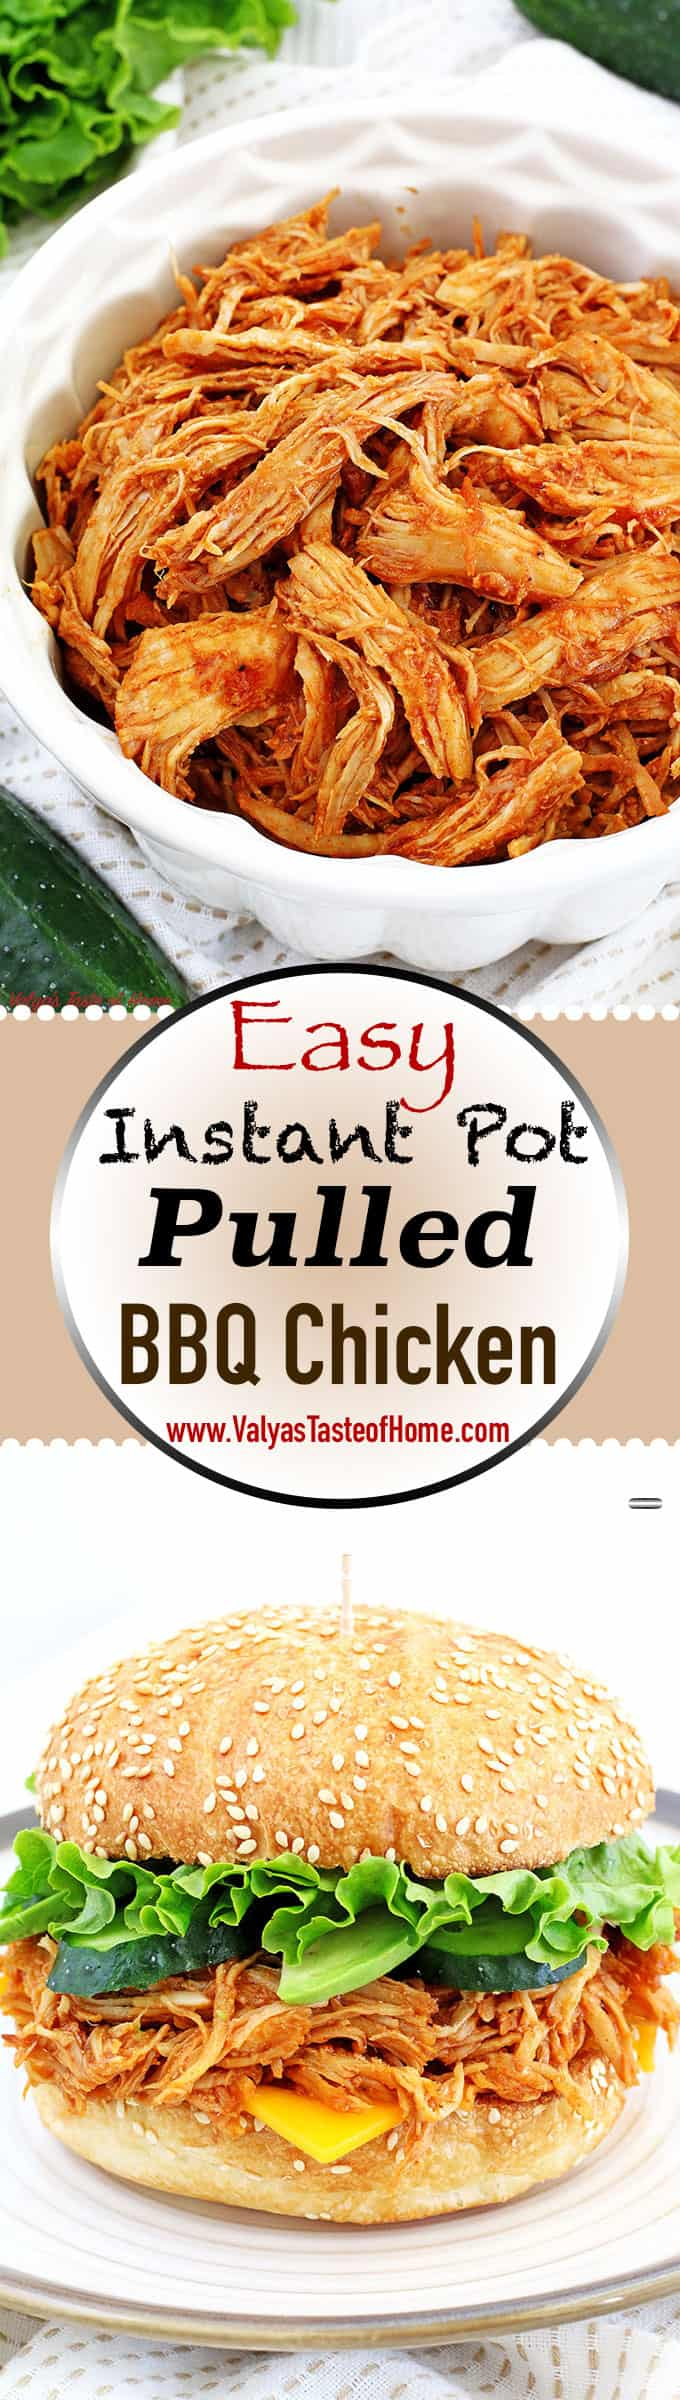 BBQ Pulled Chicken, BBQ Pulled Chicken Sandwich, delicious, easy dinner, Easy Instant Pot Pulled BBQ Chicken Recipe, homegrown cucumbers, Insta-pot, Instant Pot dish, kid-approved dinner, kid-friendly dinner, organic avocado, organic chicken breast, organic leaf lettuce, quick and easy recipe